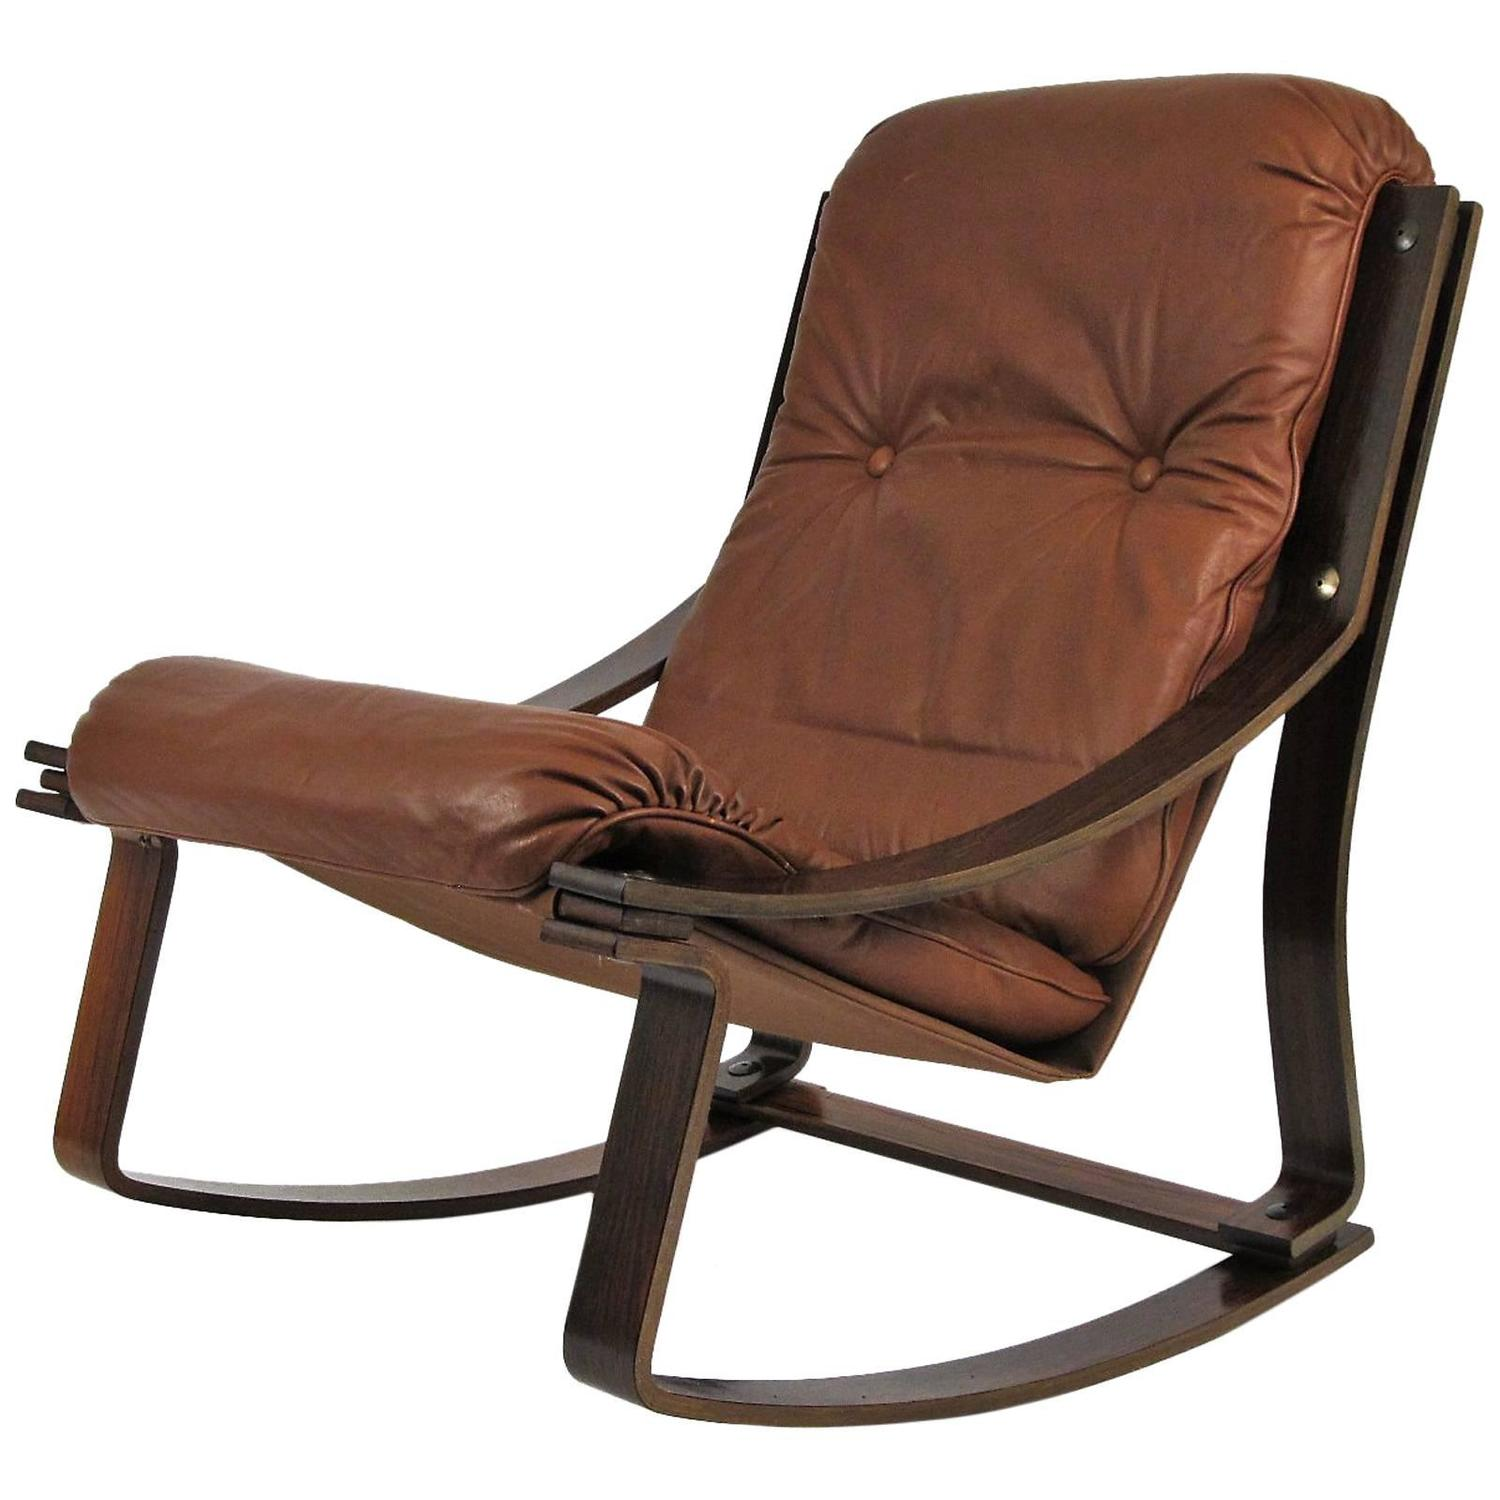 rocking chair leather and wood desk dublin rosewood westnofa norwegian at